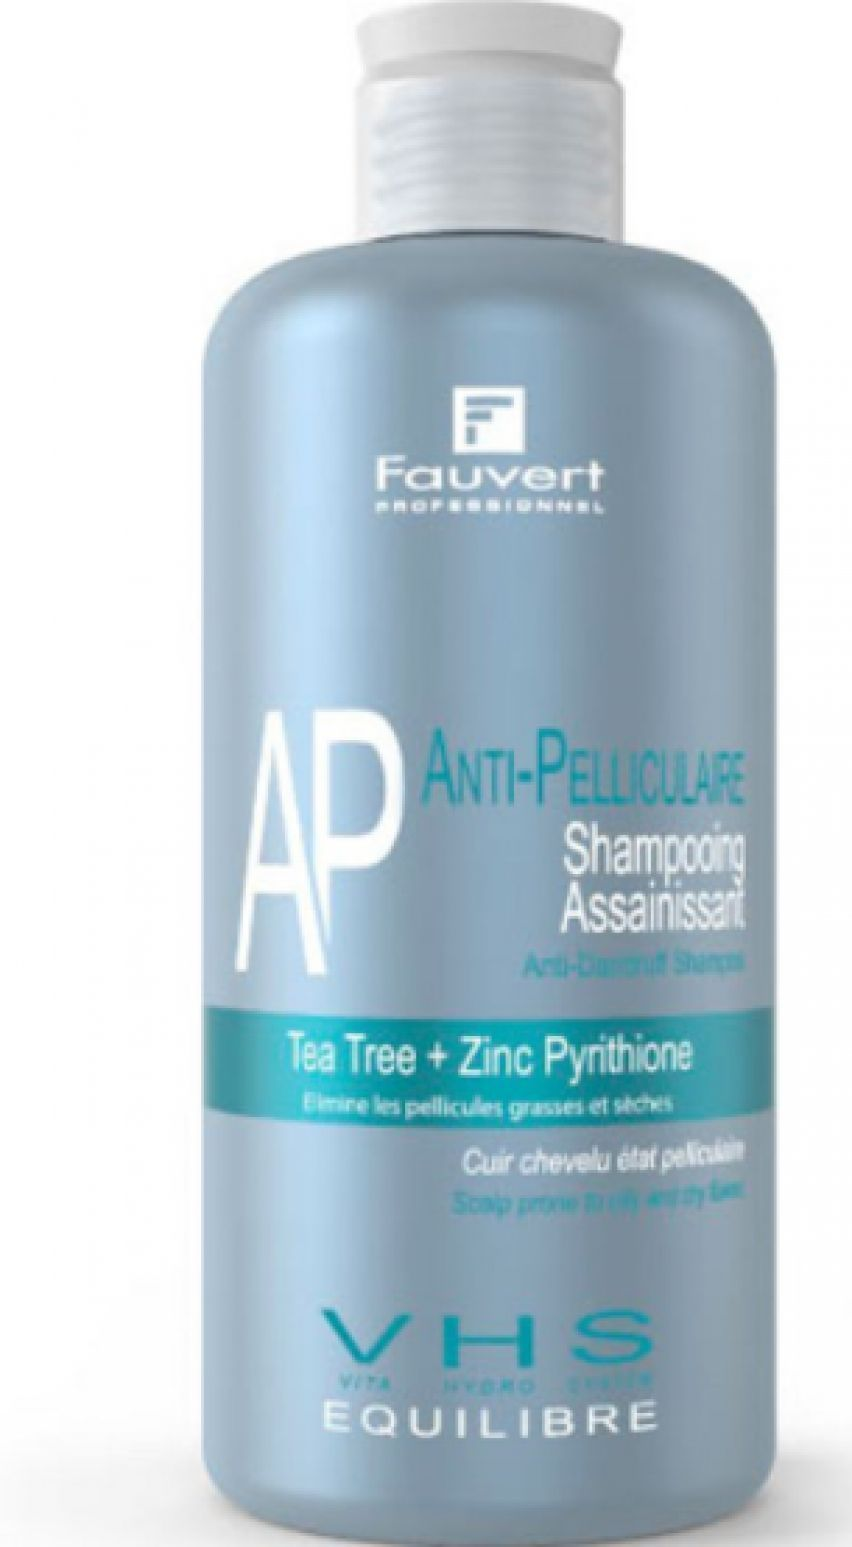 LOVE MY HAIR - Shampooing Fauvert anti-pelliculaire